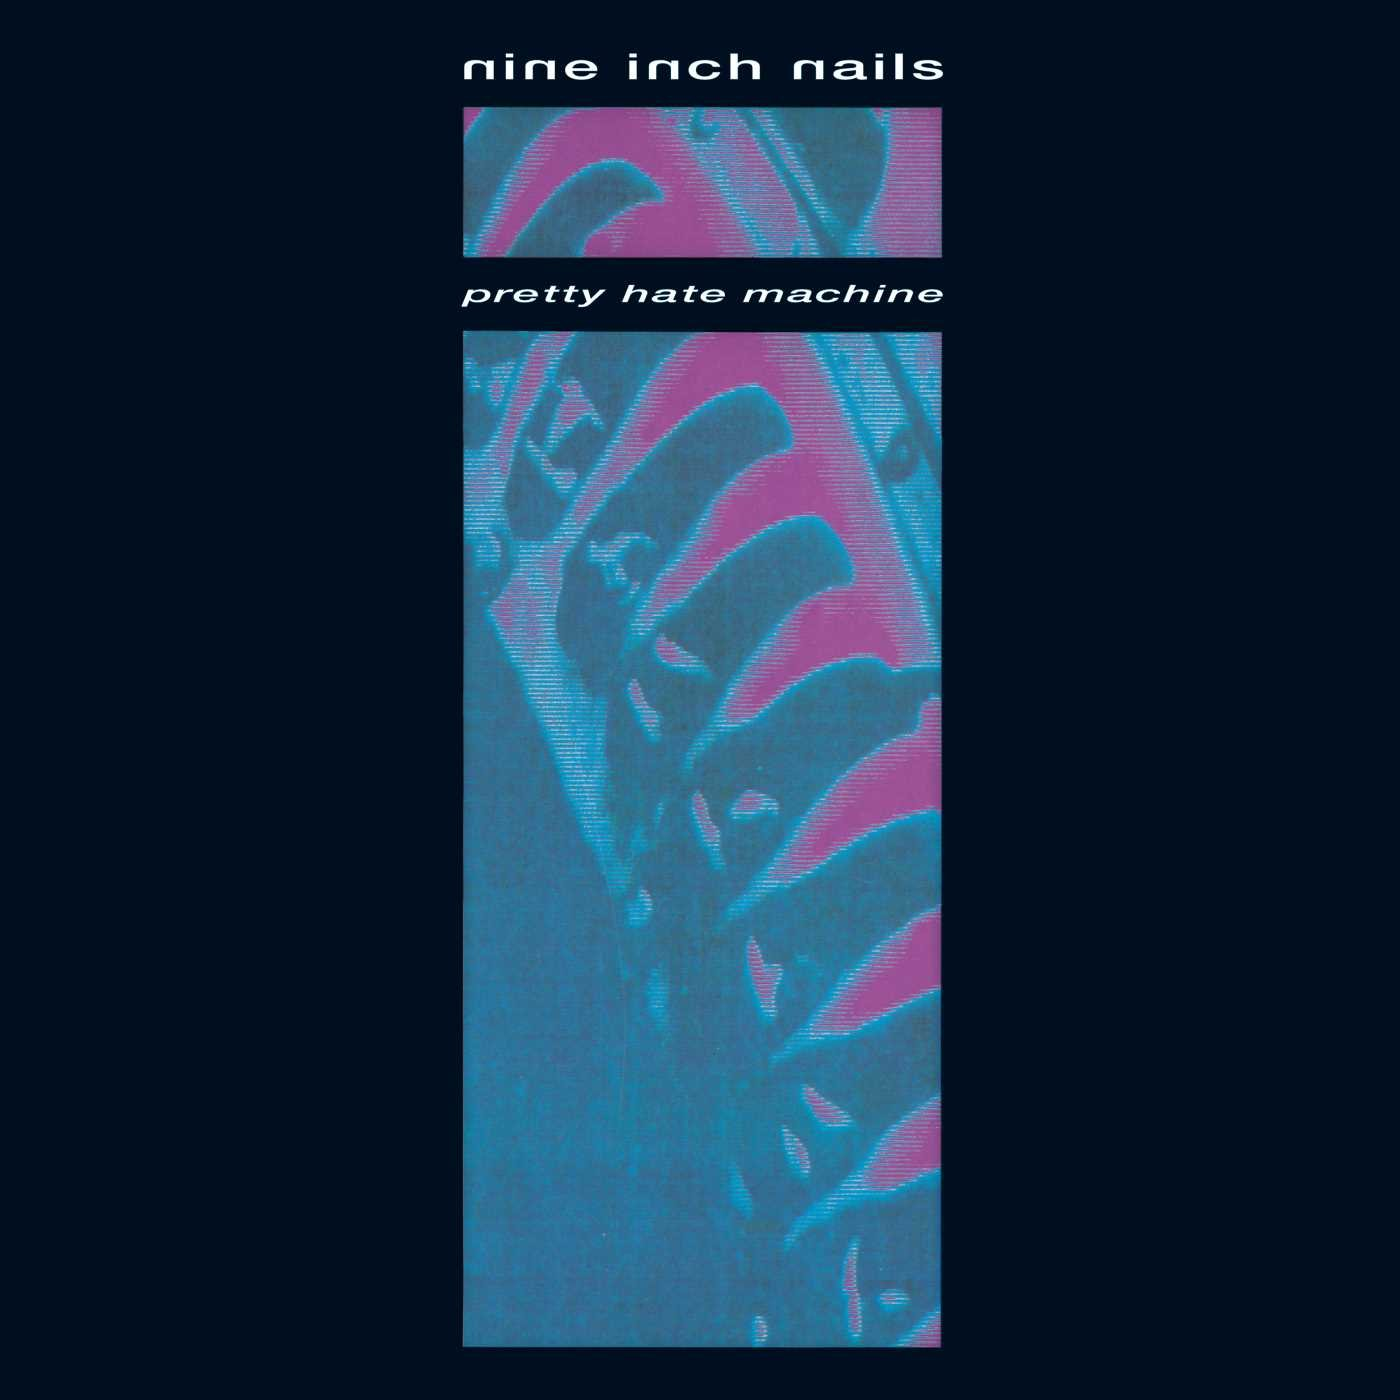 Nine Inch Nails - Pretty Hate Machine [LP] - Amazon.com Music